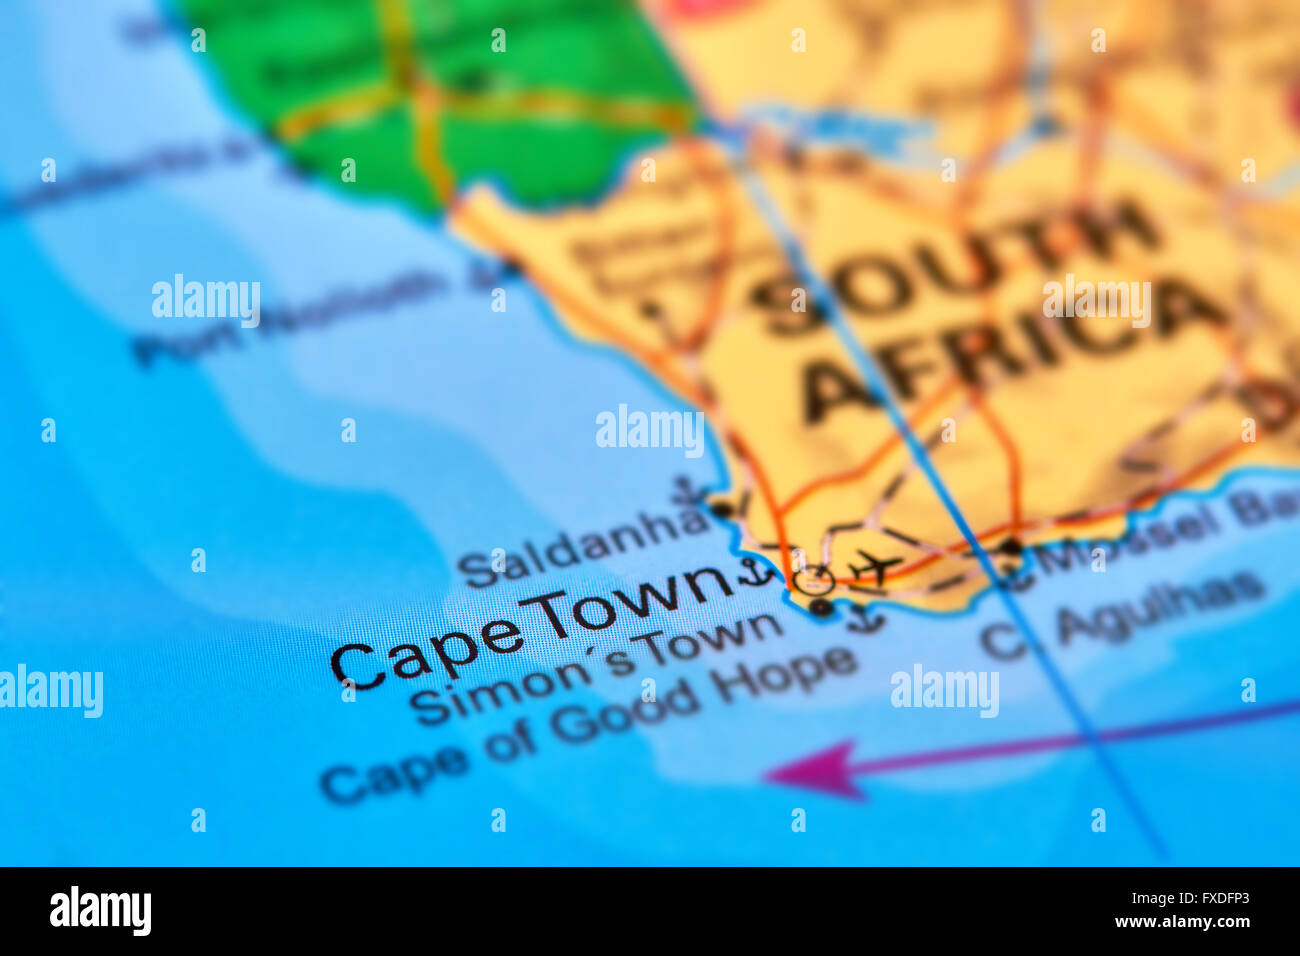 Cape town capital city of south africa on the world map stock photo cape town capital city of south africa on the world map gumiabroncs Gallery